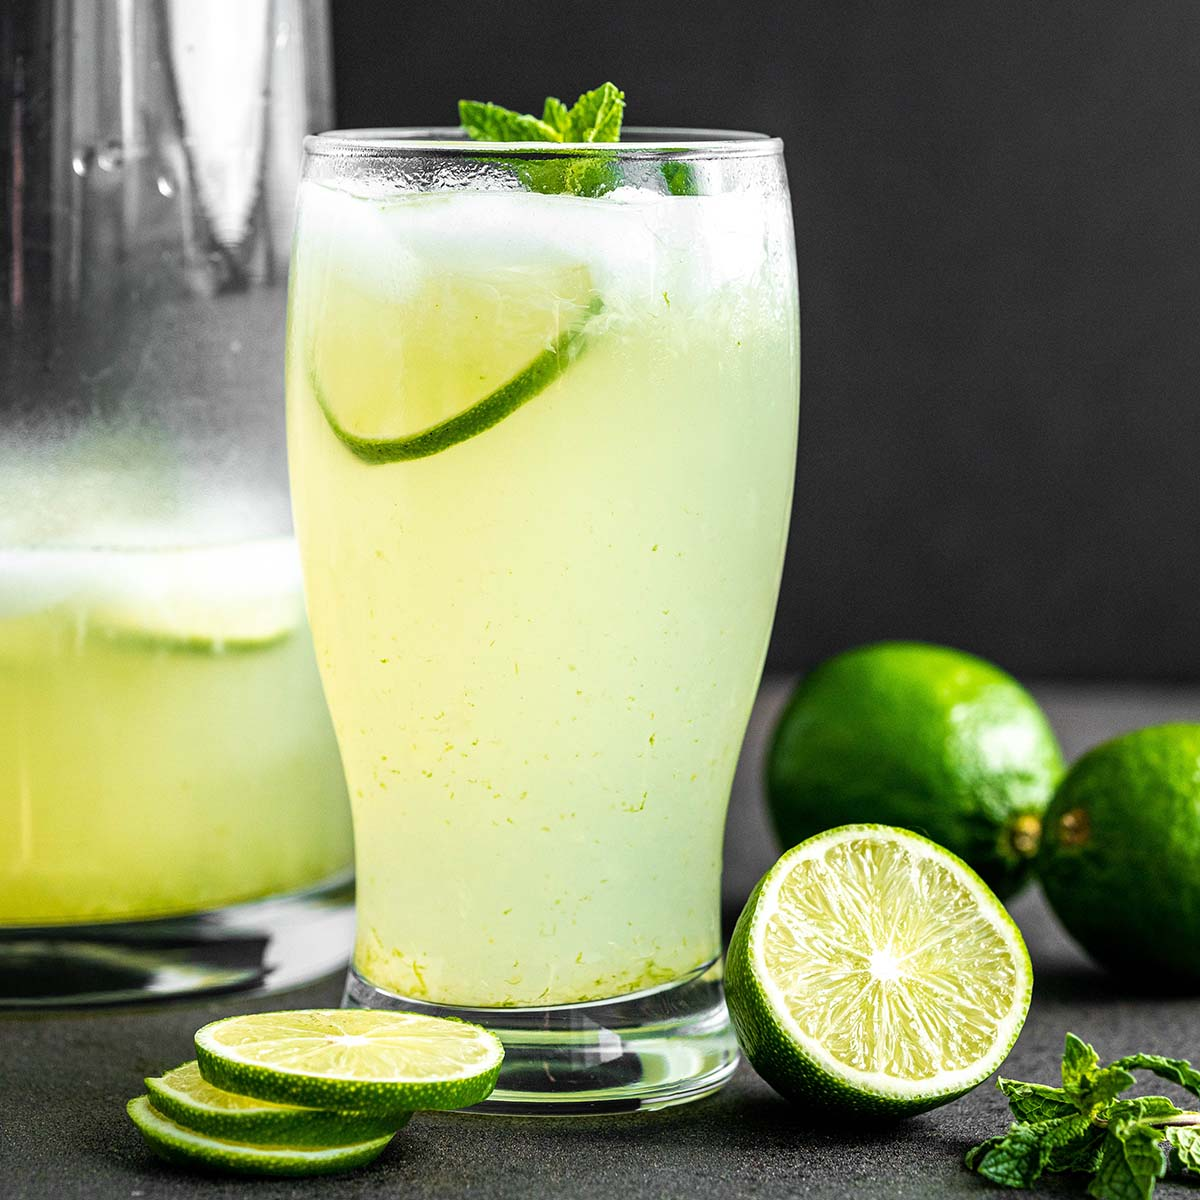 limeade featured image